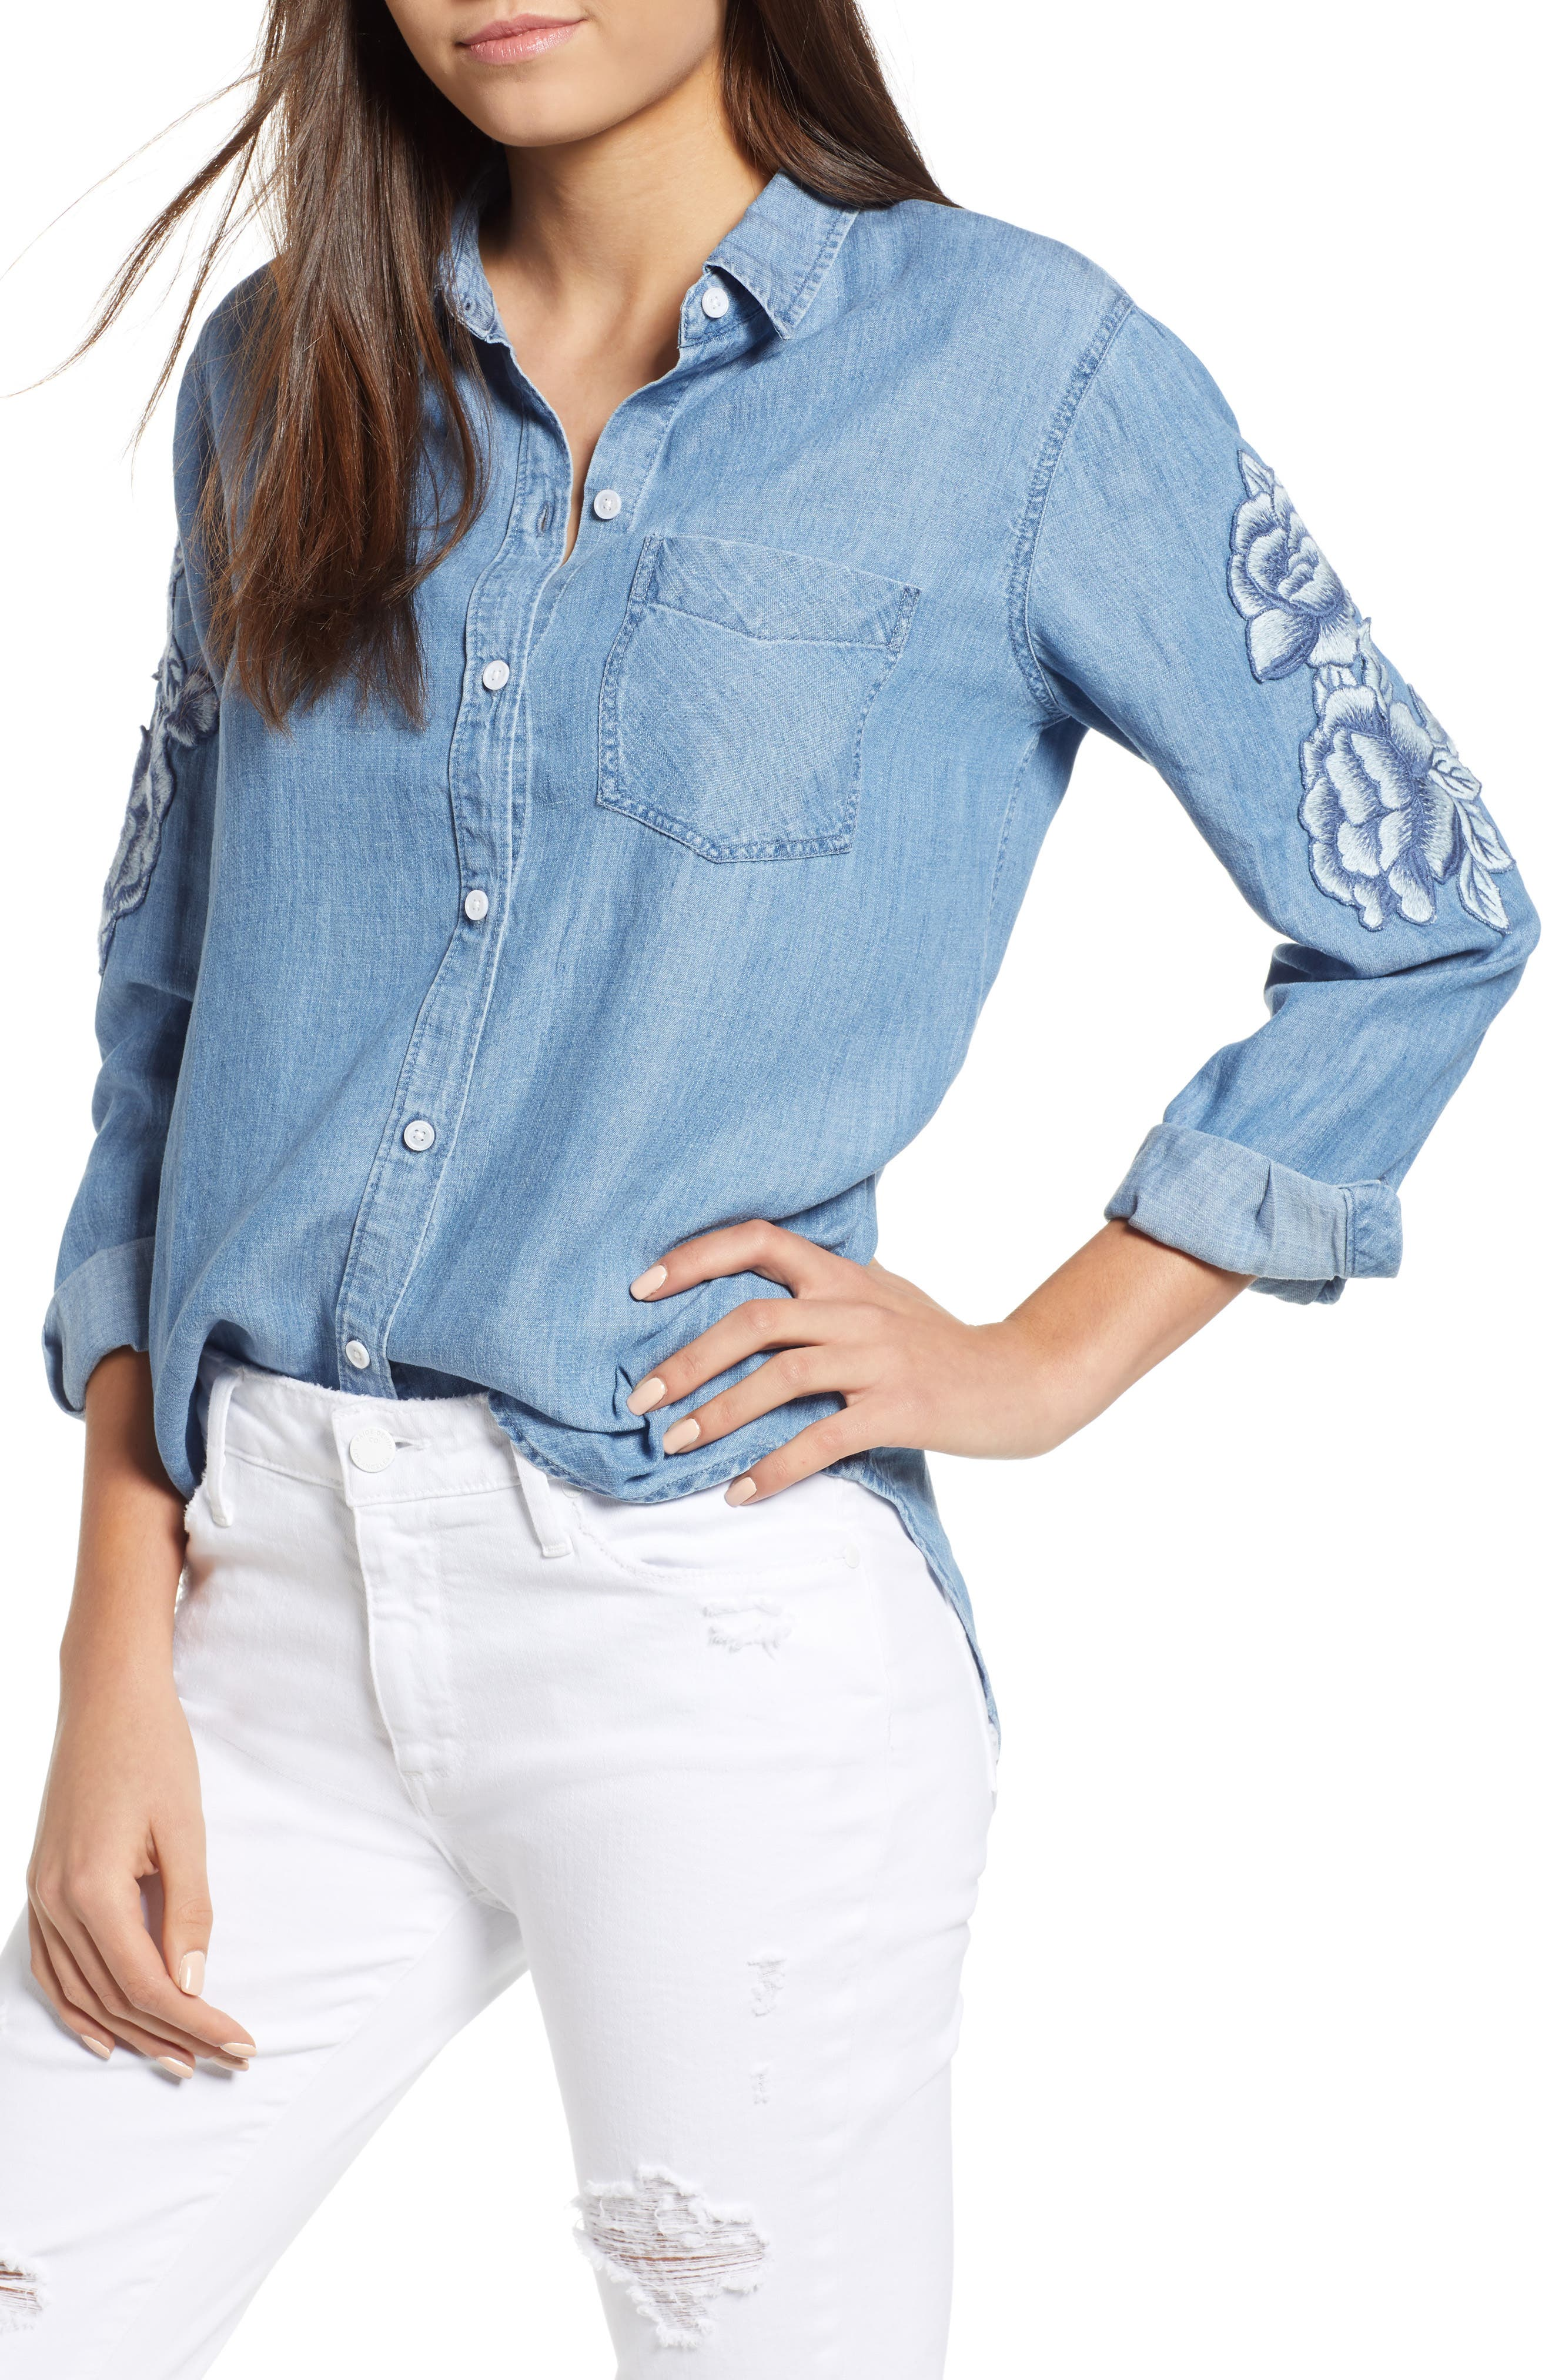 Ingrid Embroidered Chambray Shirt,                             Main thumbnail 1, color,                             Medium Vintage W/ White Floral